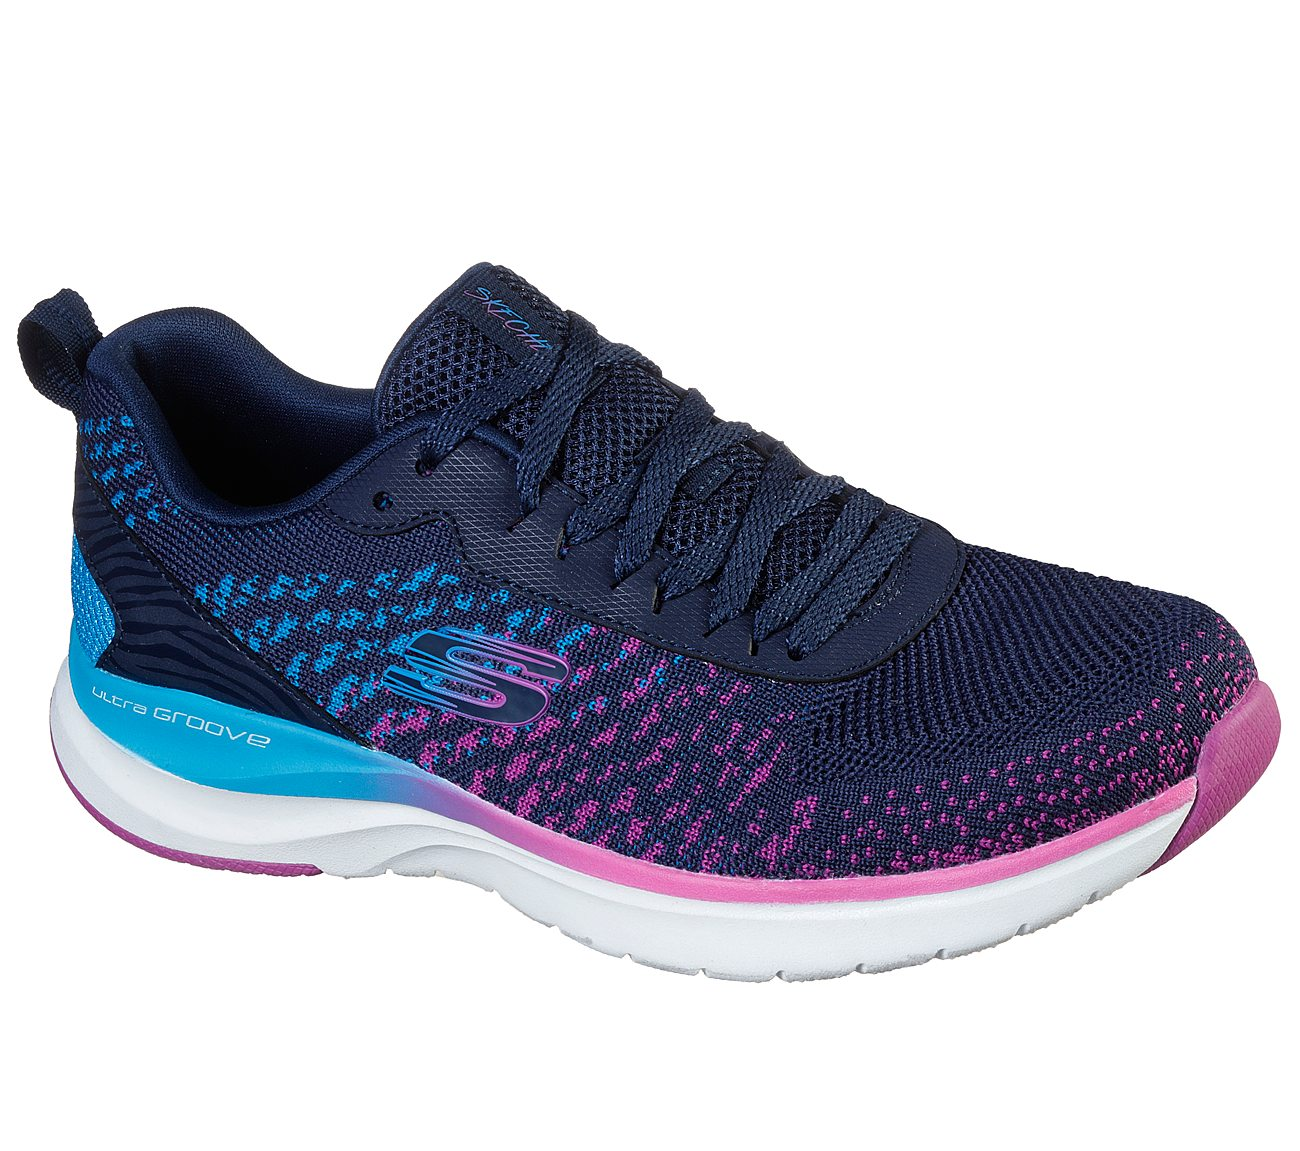 SKECHERS LADIES ULTRA GROOVE-GLAMOUR NAVY/MULTI SHOE